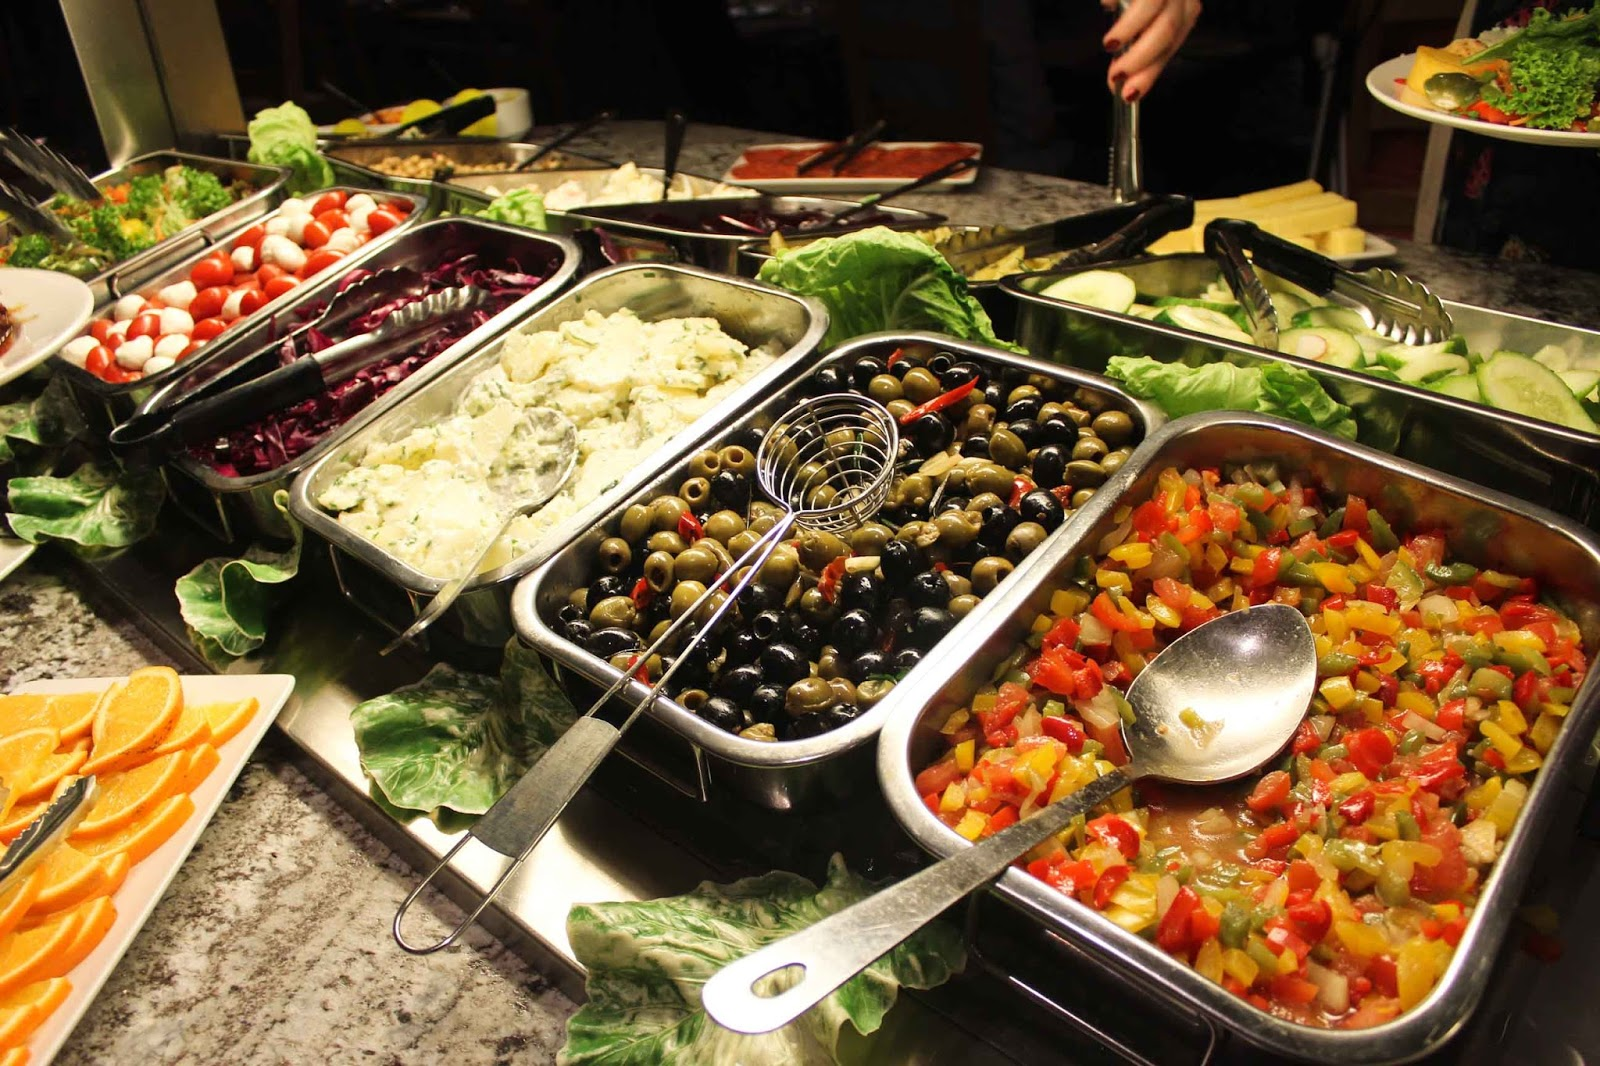 Salad bar at Bem Brazil